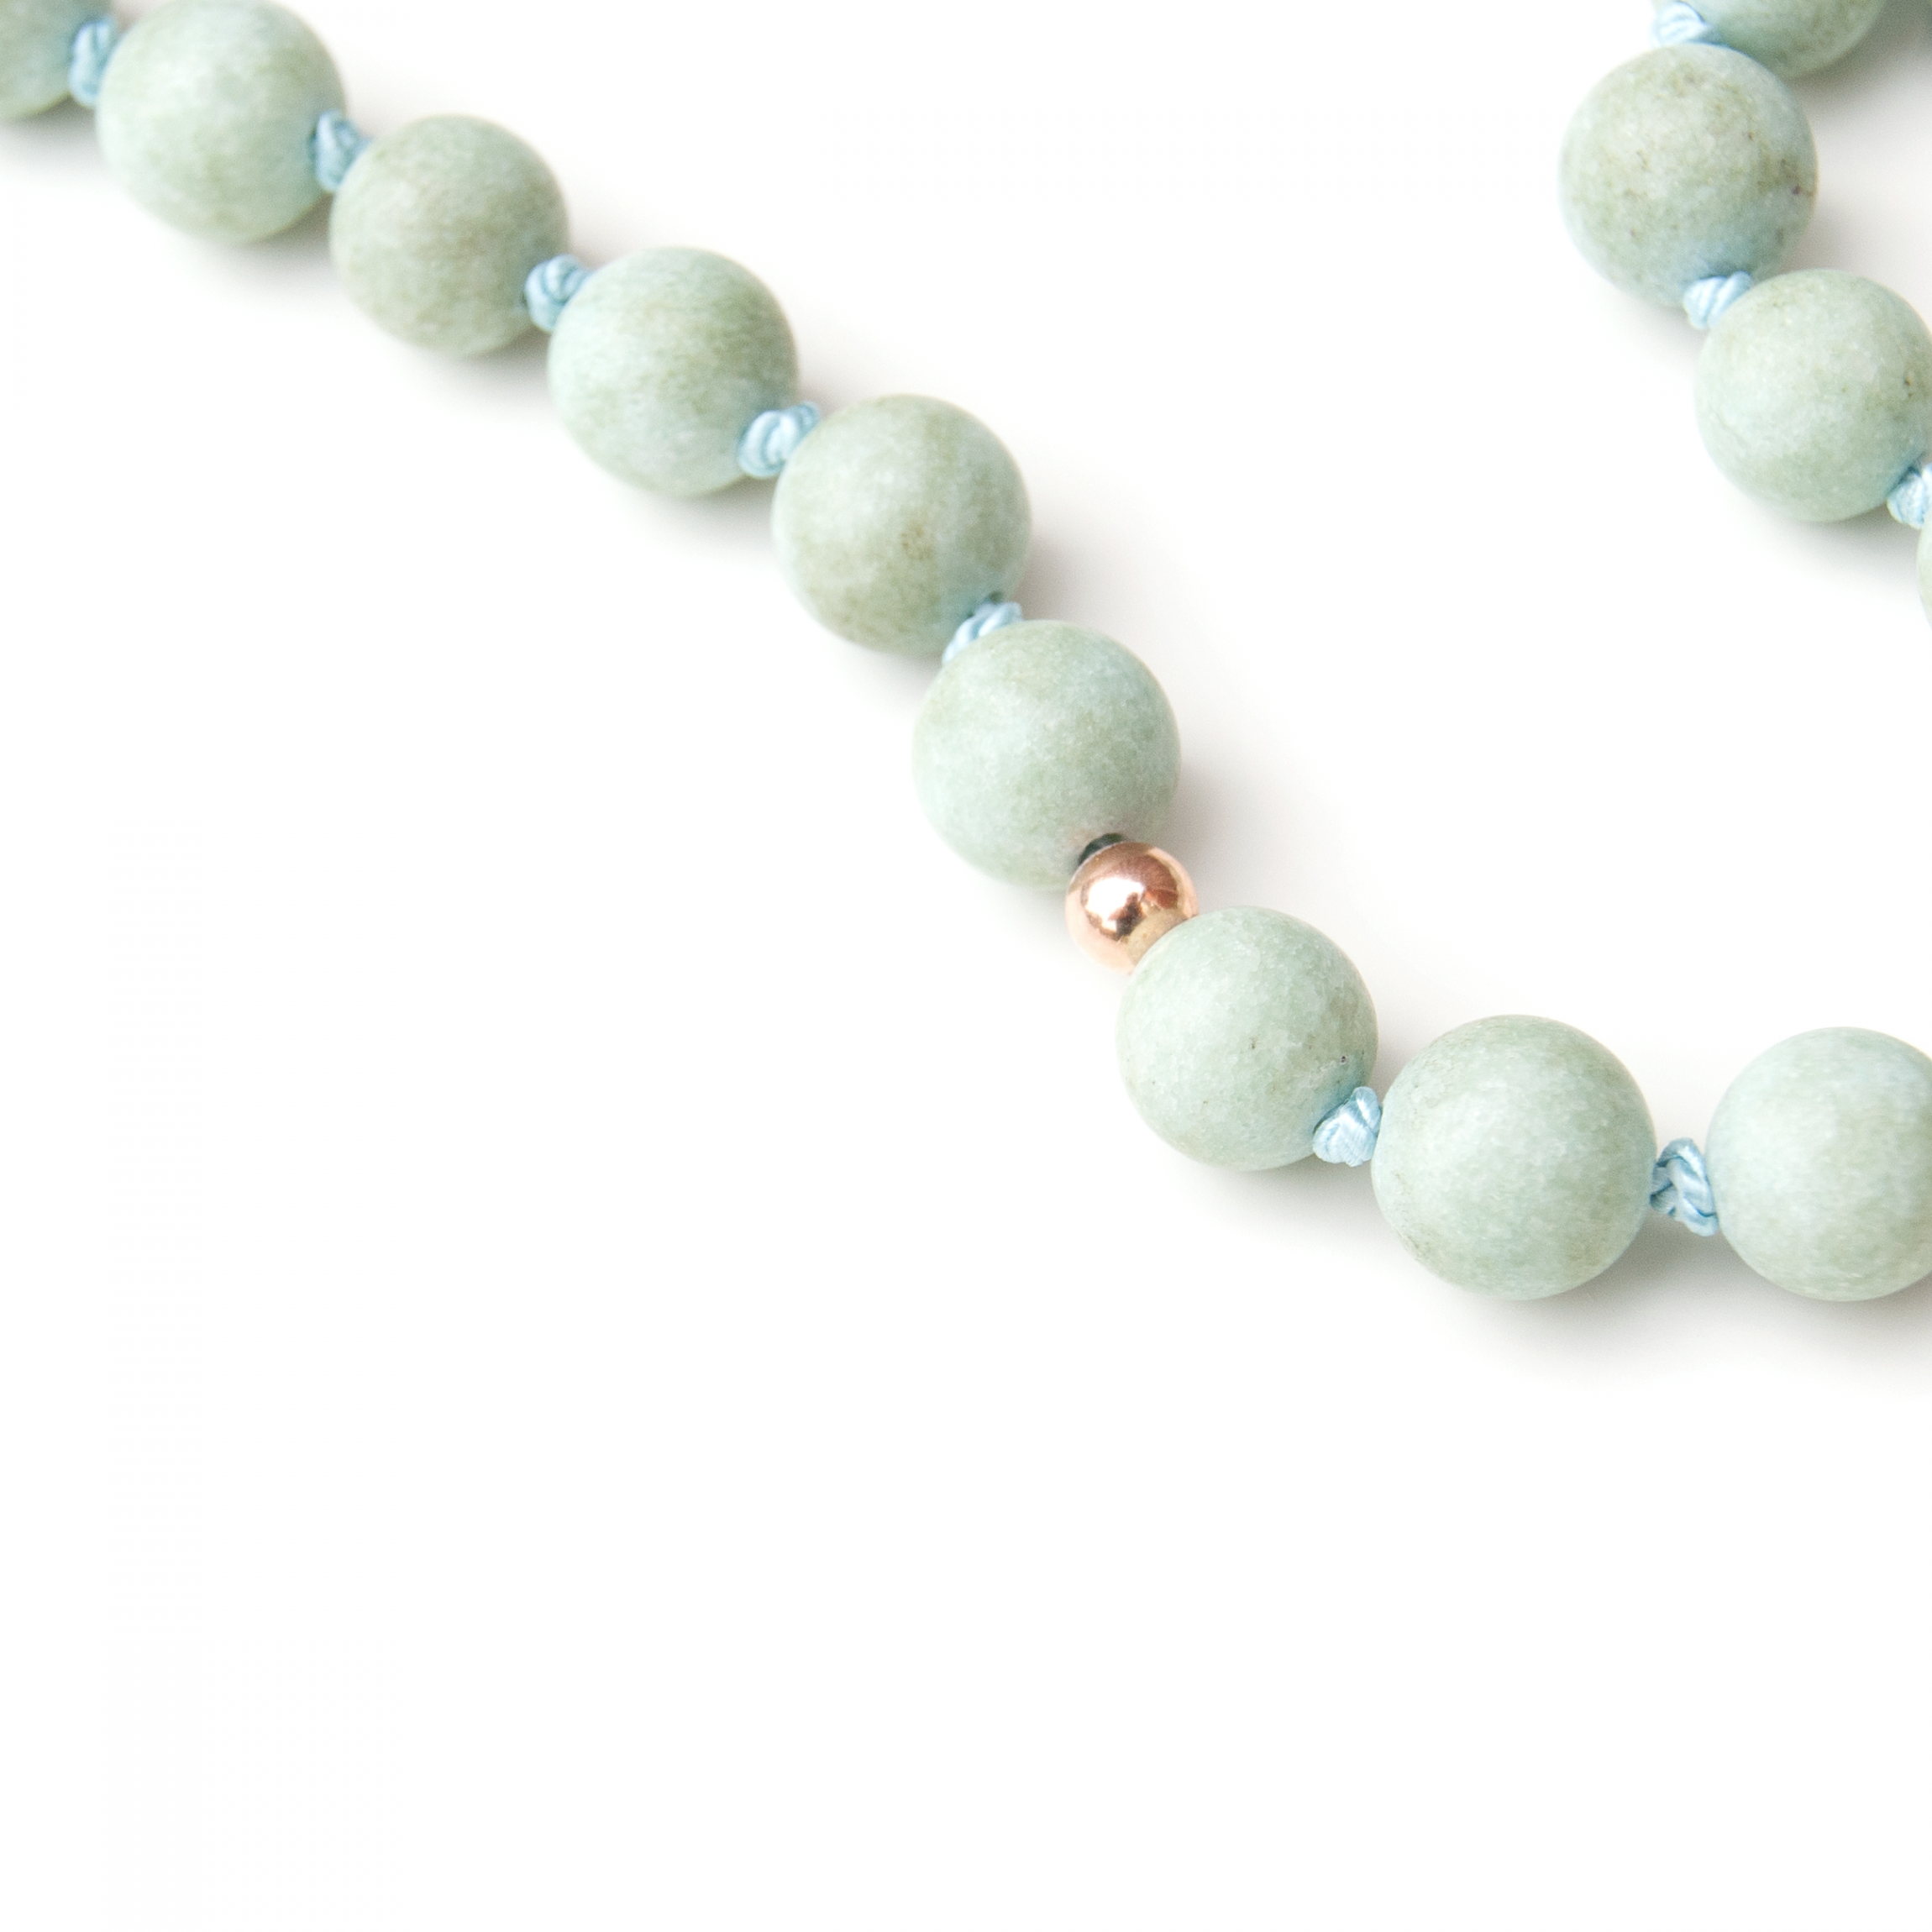 14k golden spacers on the Jade mala